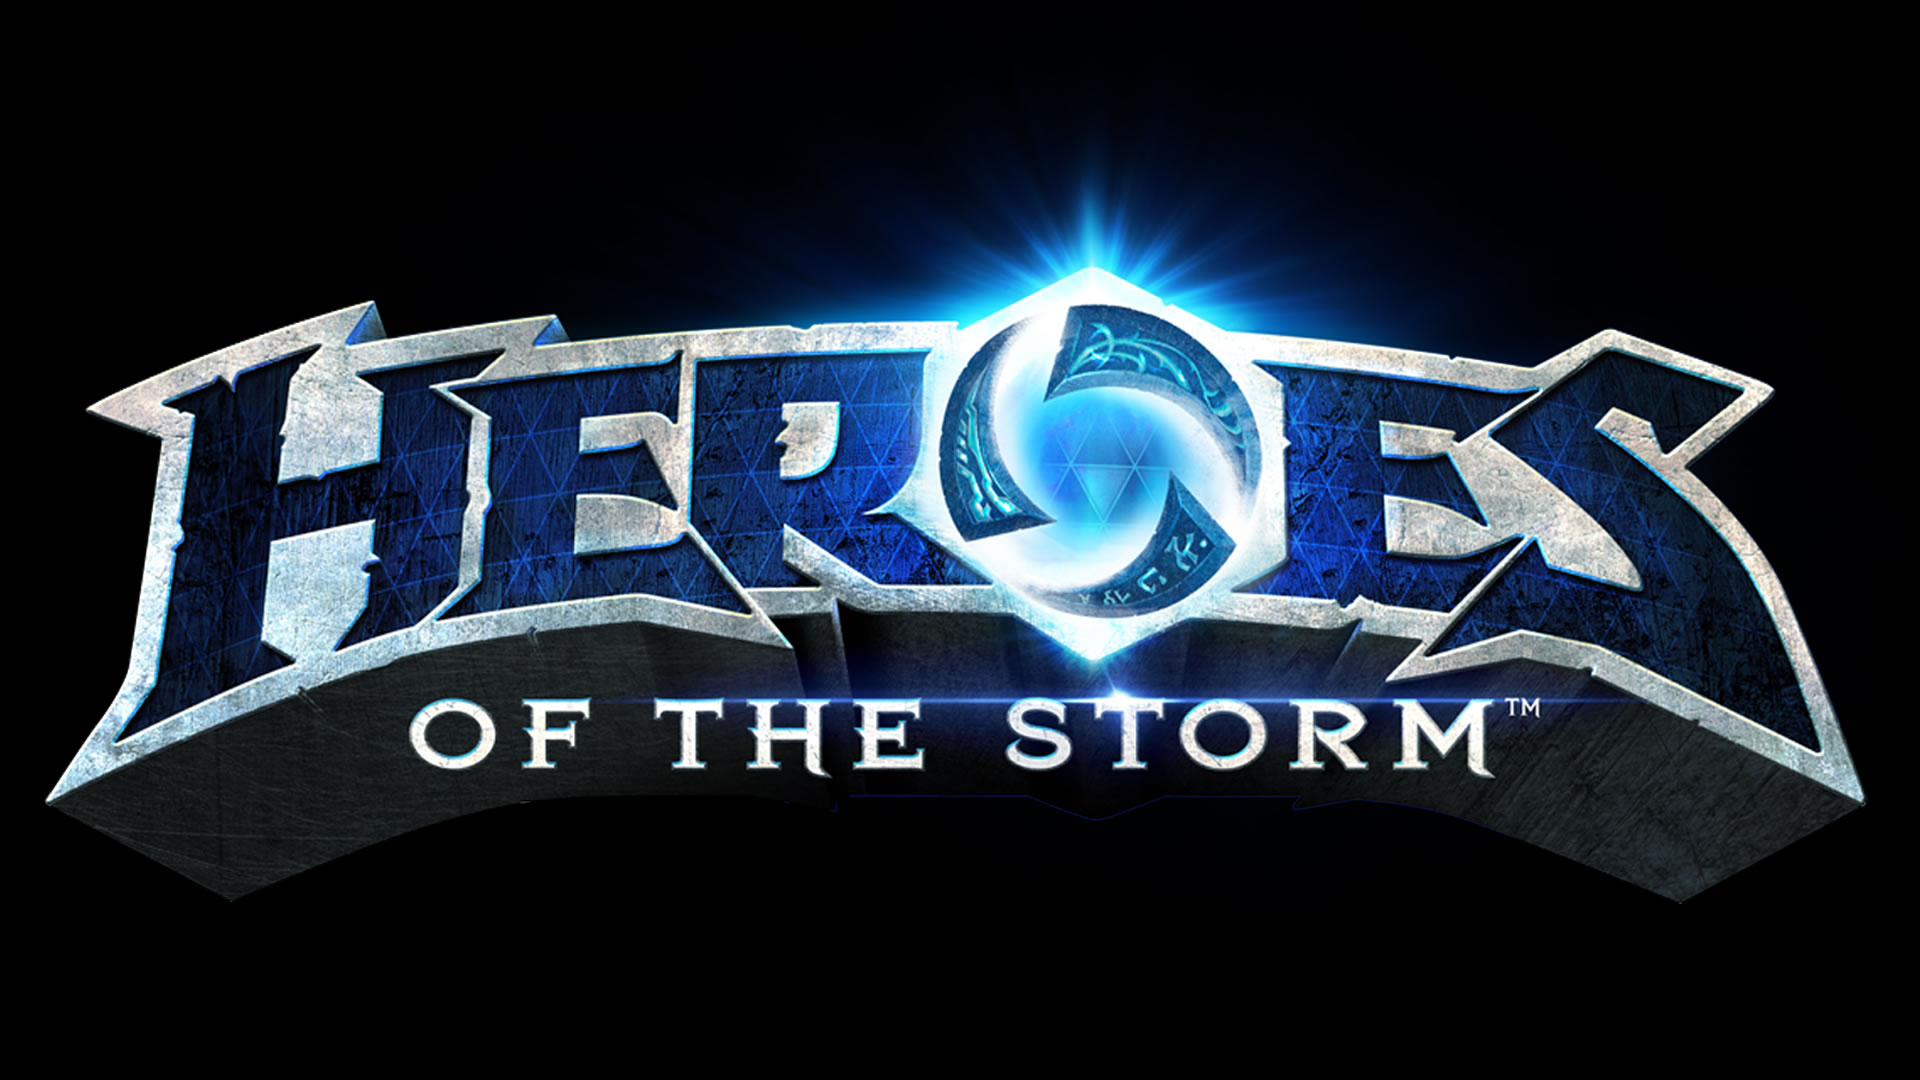 Heroes of the Storm logo wallpaper